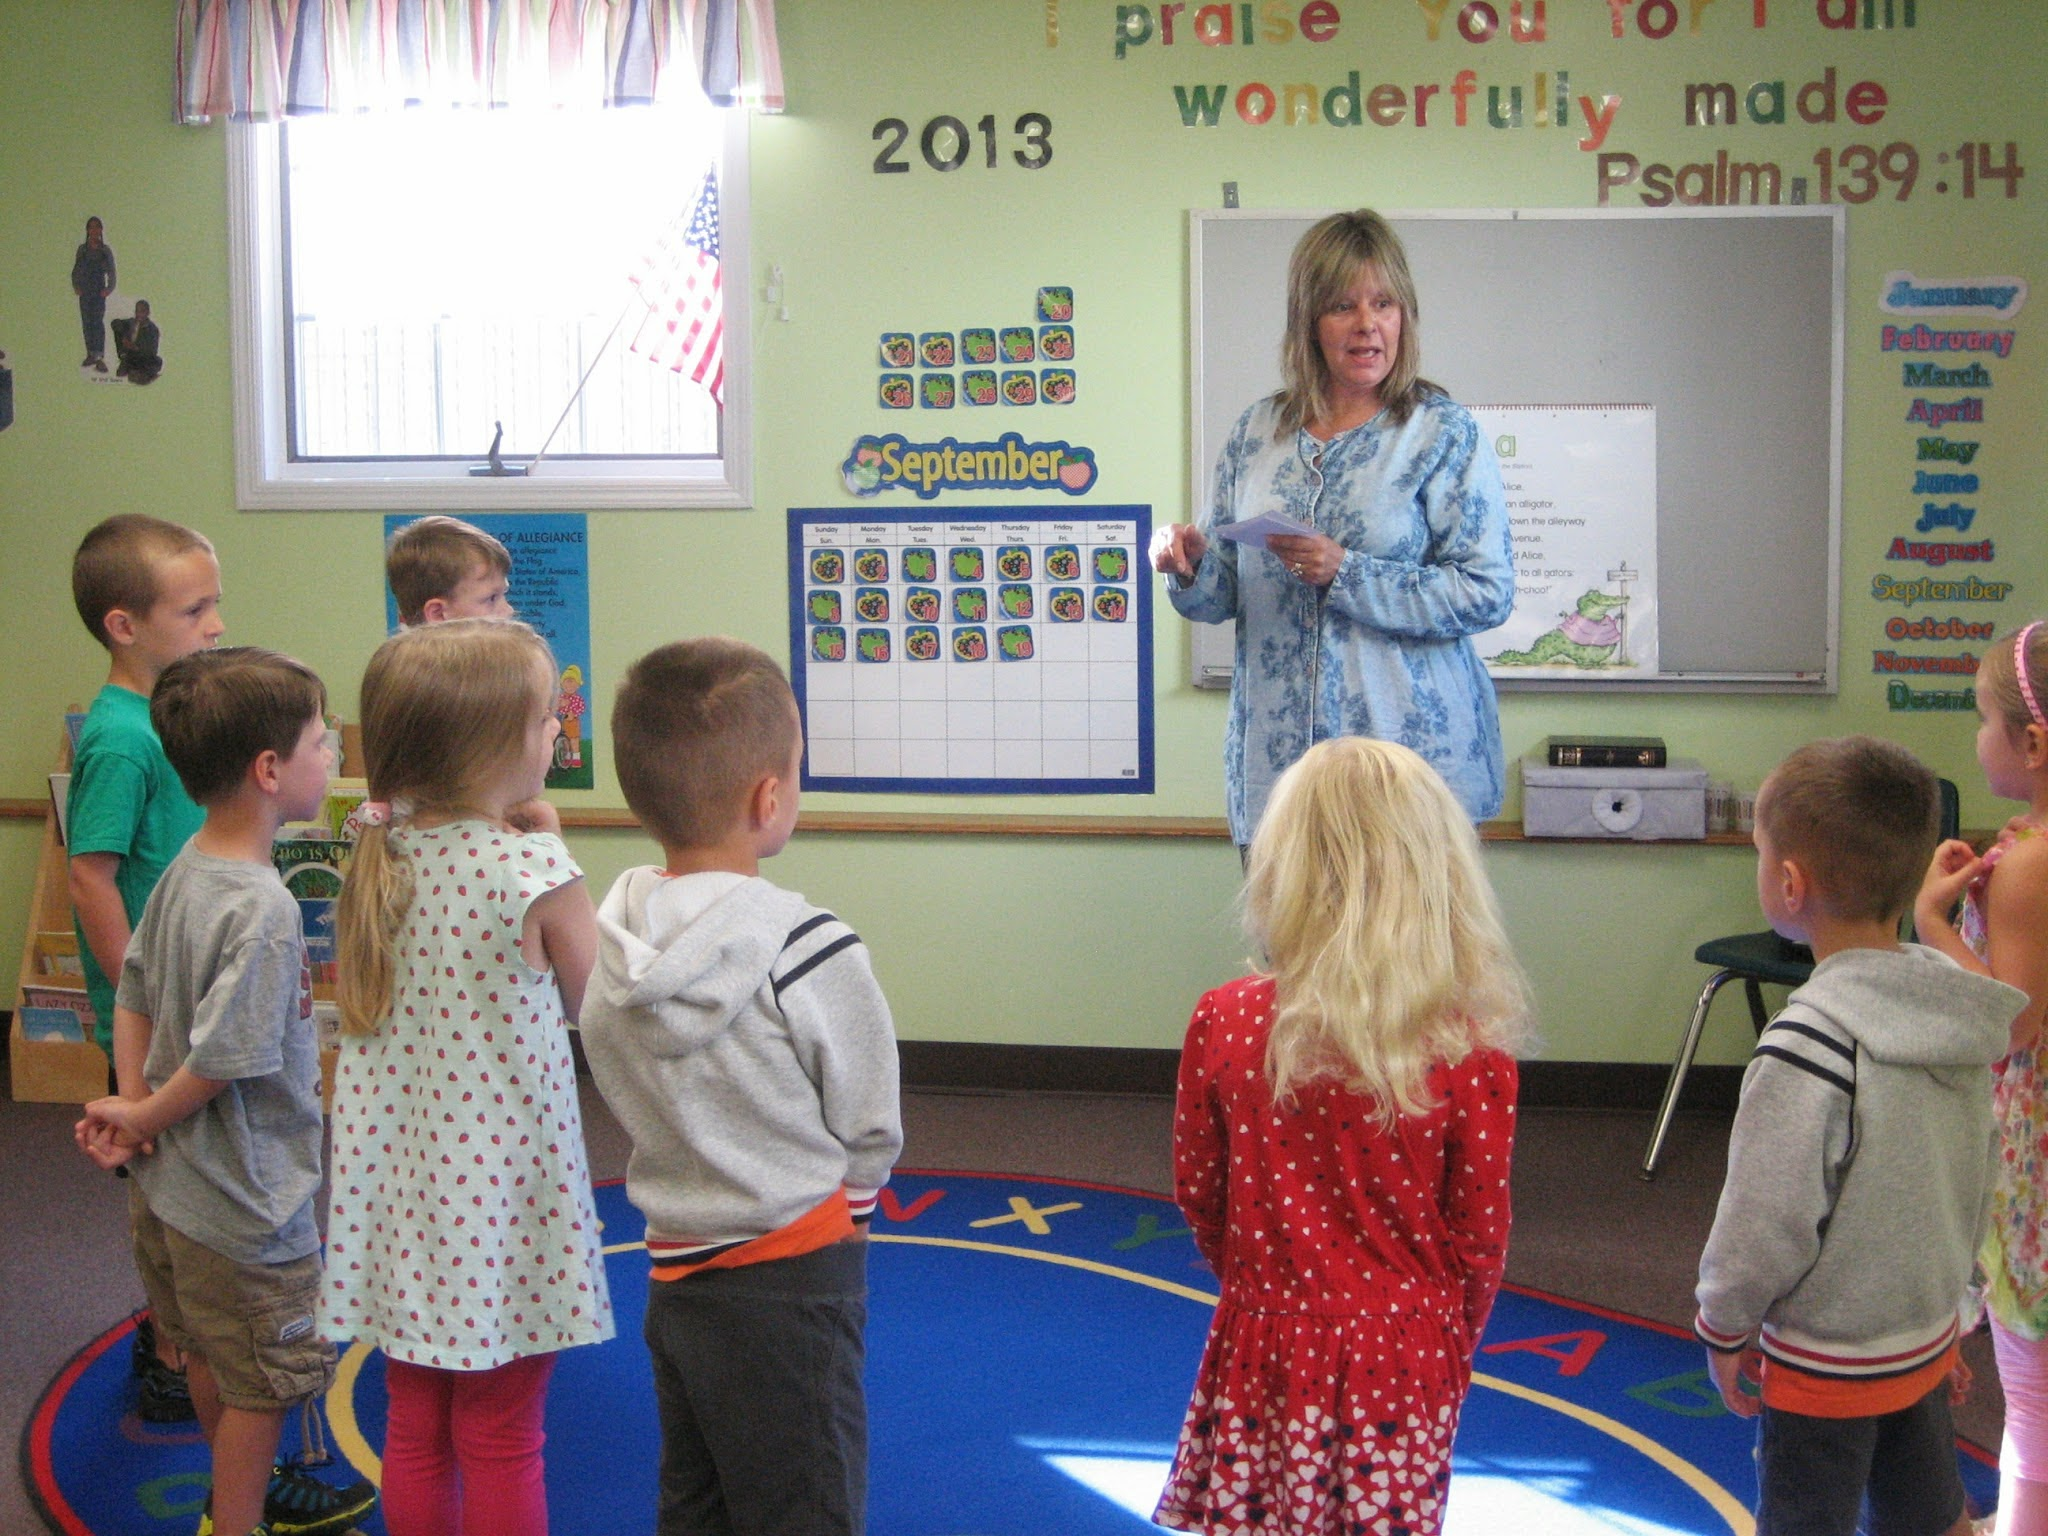 Little-Footprints-Basking-Ridge-NJ-Preschool-Christian-011